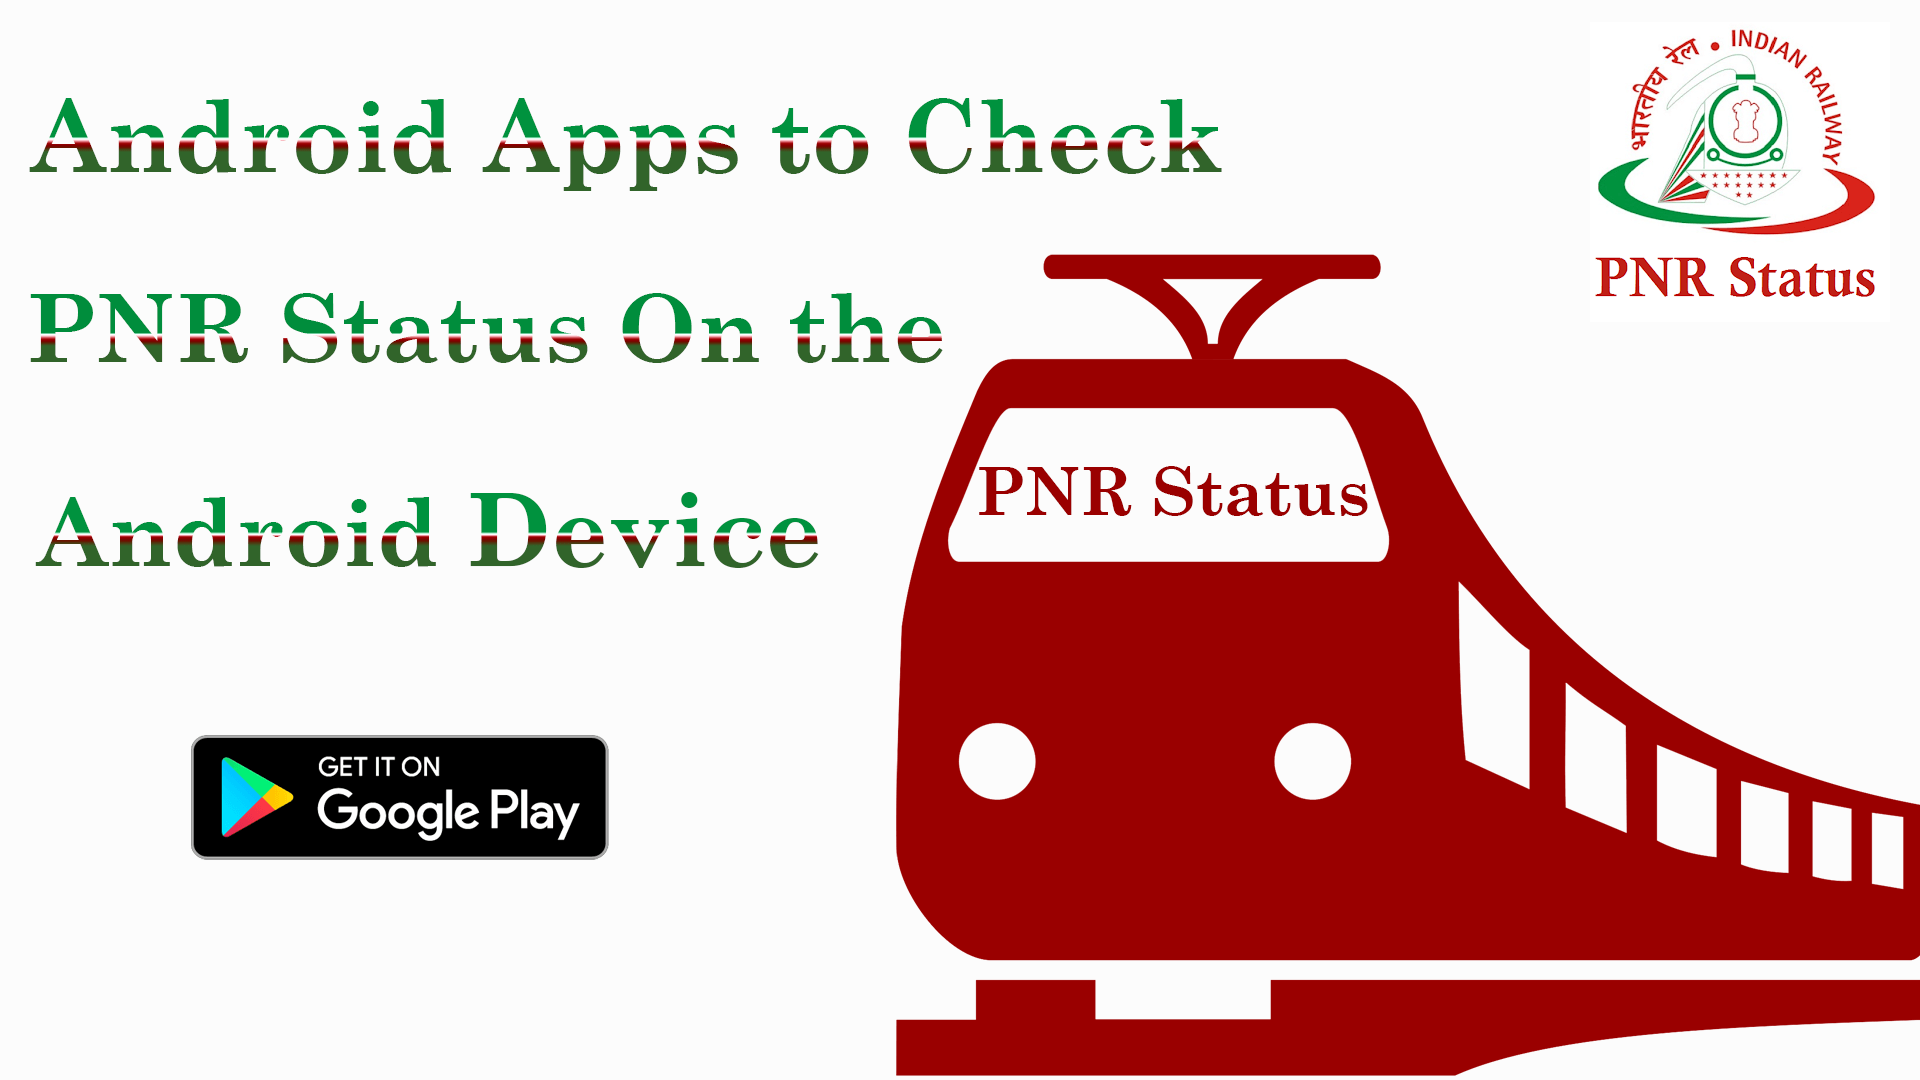 Best Android Apps to Check PNR Status On the Android Device - theandroidportal.com